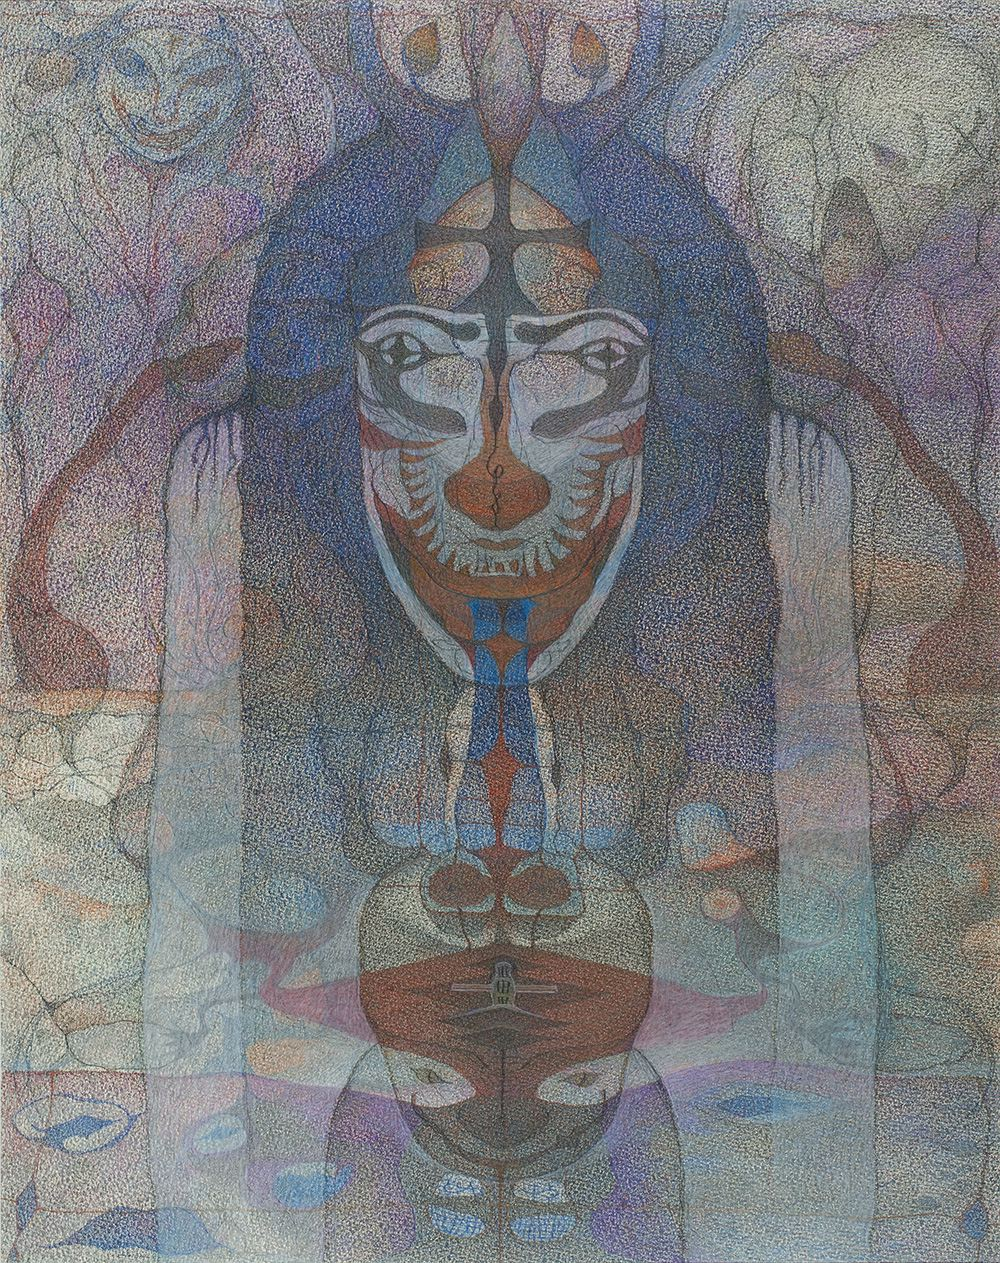 M'onma    Untitled  , 2006 Colored pencil on paper 22.44 x 17.72 inches 57 x 45 cm IMo 72